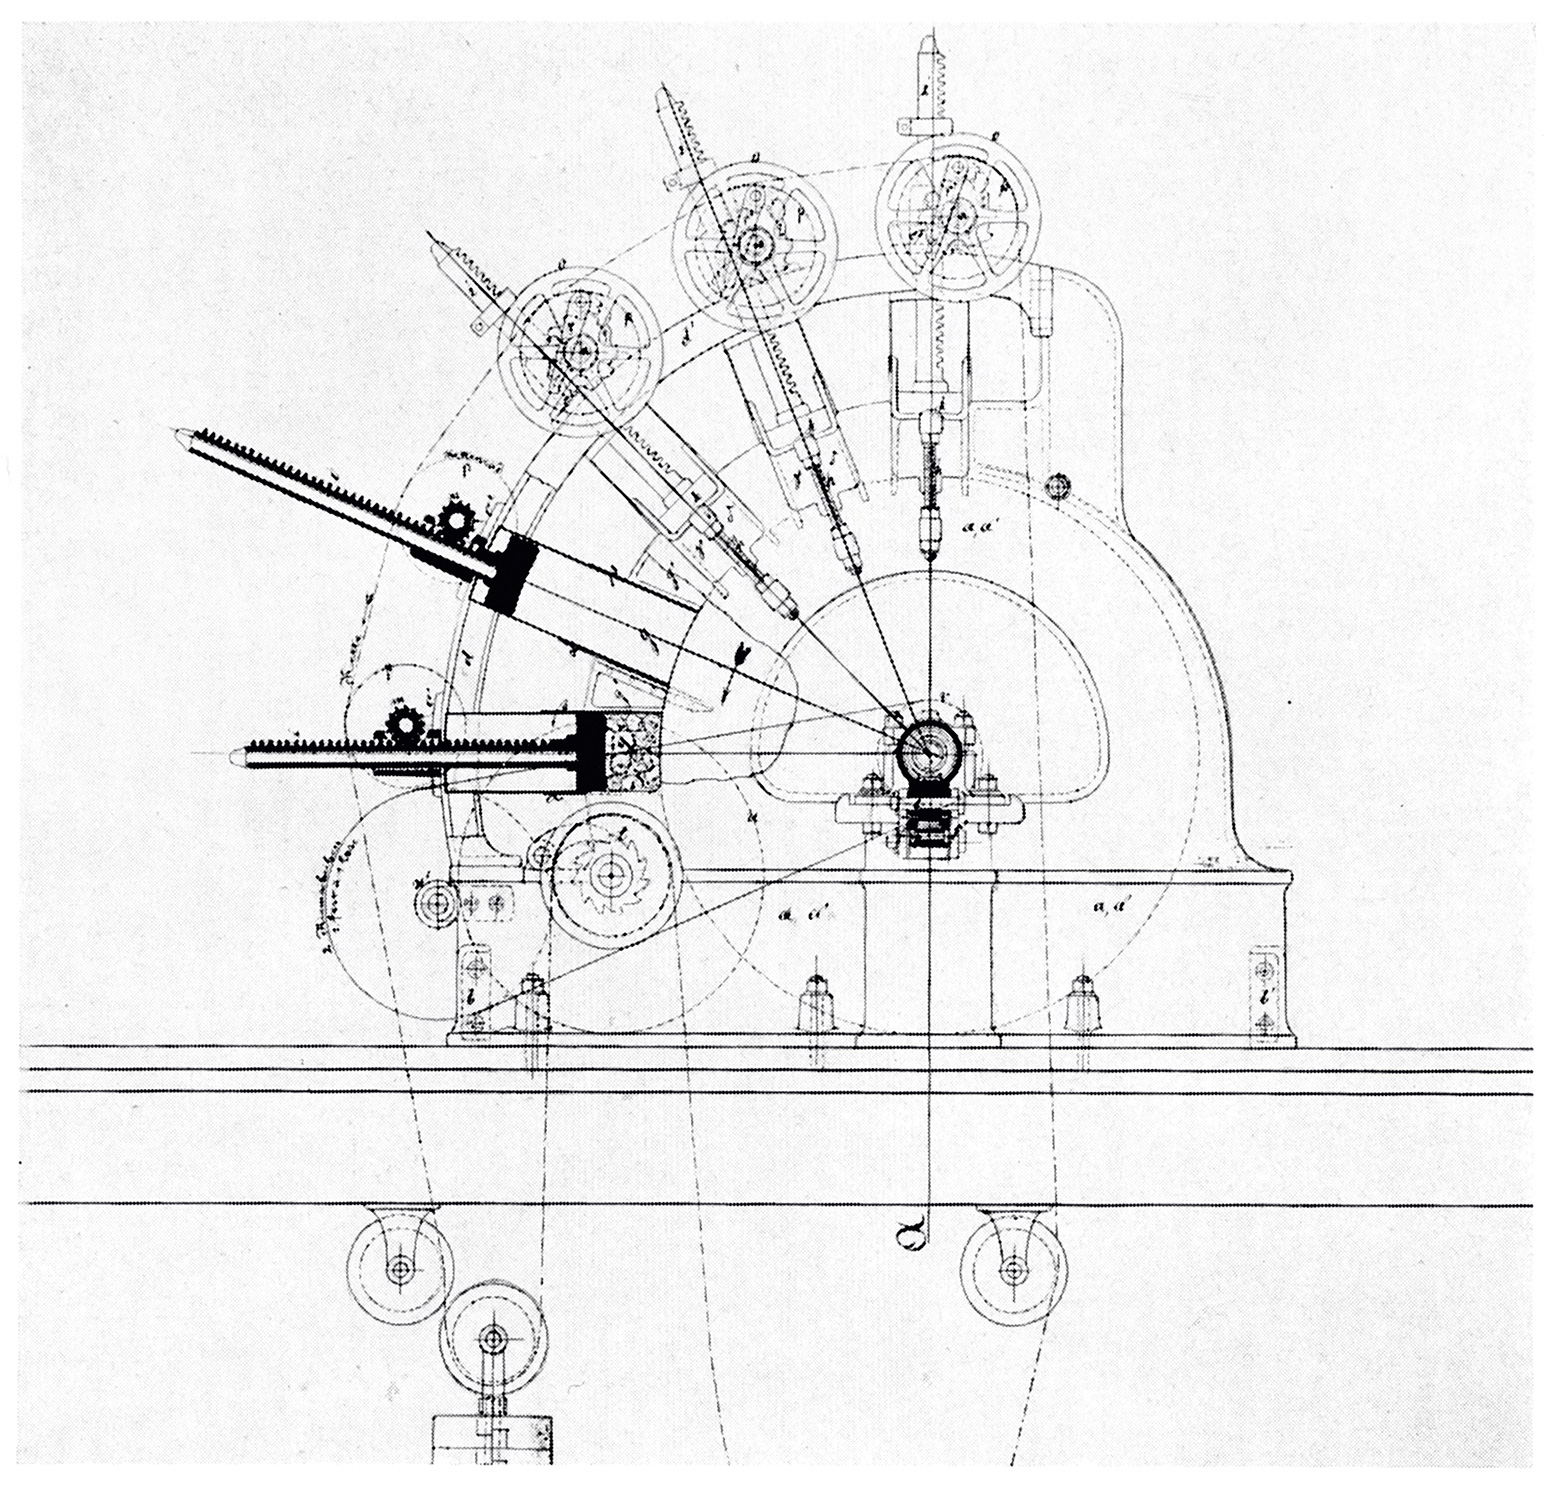 Voith wiring diagram wikishare 1869 patent holzschleifer voith wiring diagram